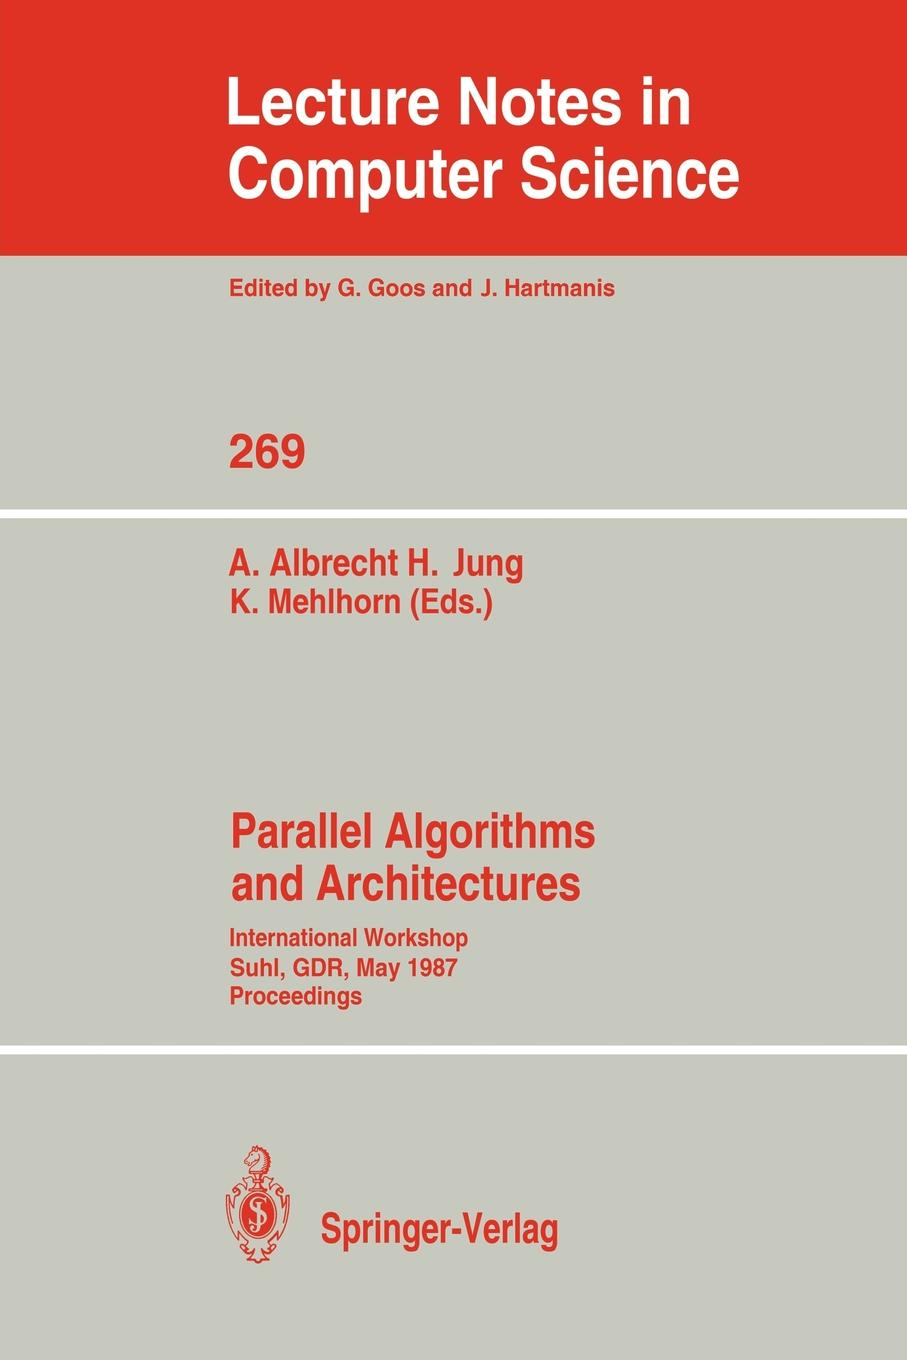 Parallel Algorithms and Architectures. International Workshop Suhl, GDR, May 25-30, 1987; Proceedings fayez gebali algorithms and parallel computing